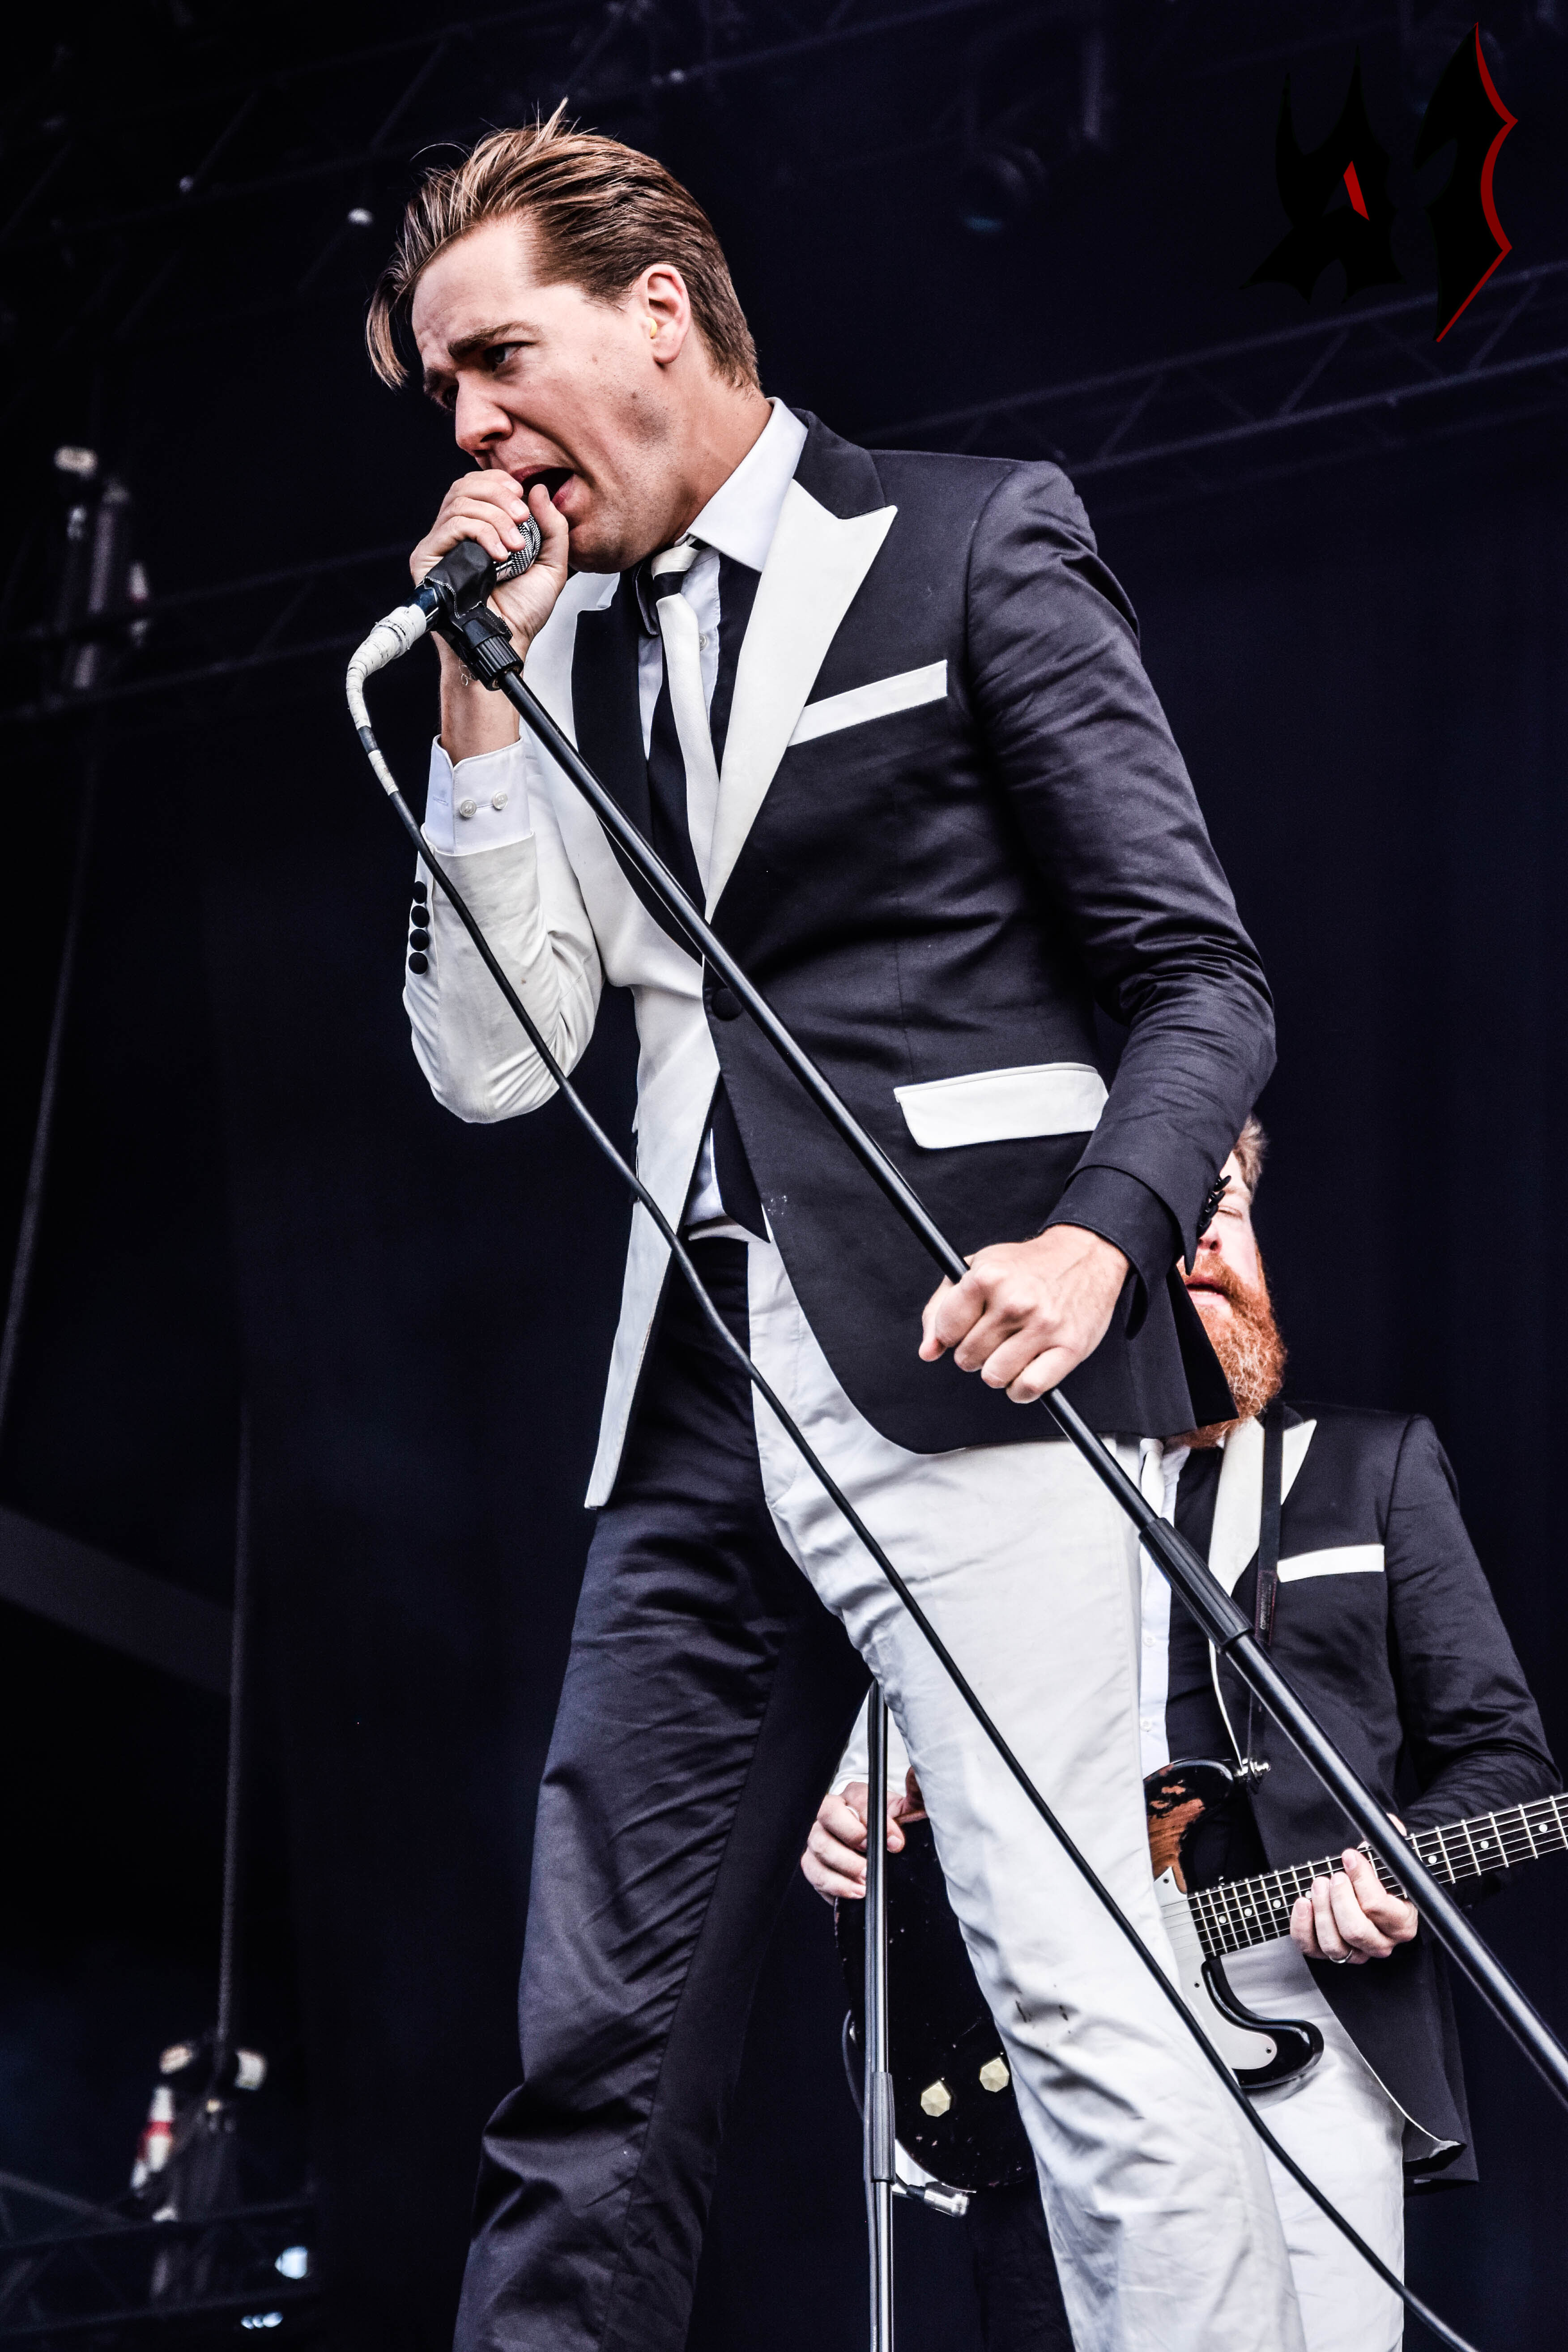 Donwload 2018 – Day 3 - The Hives 3